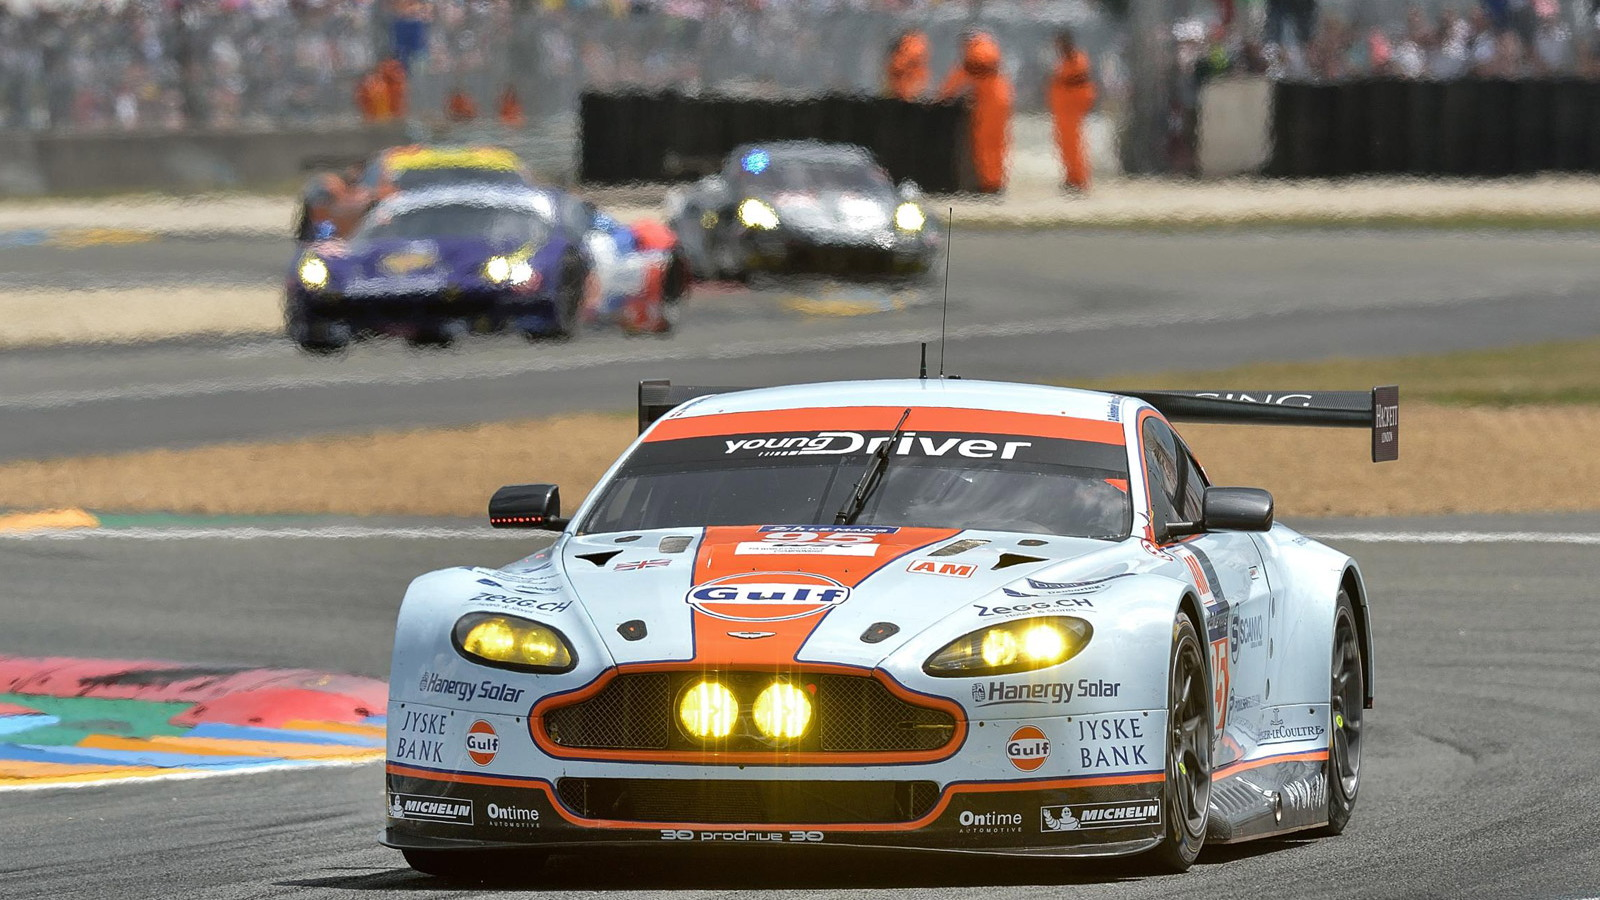 Aston Martin at the 2014 24 Hours of Le Mans